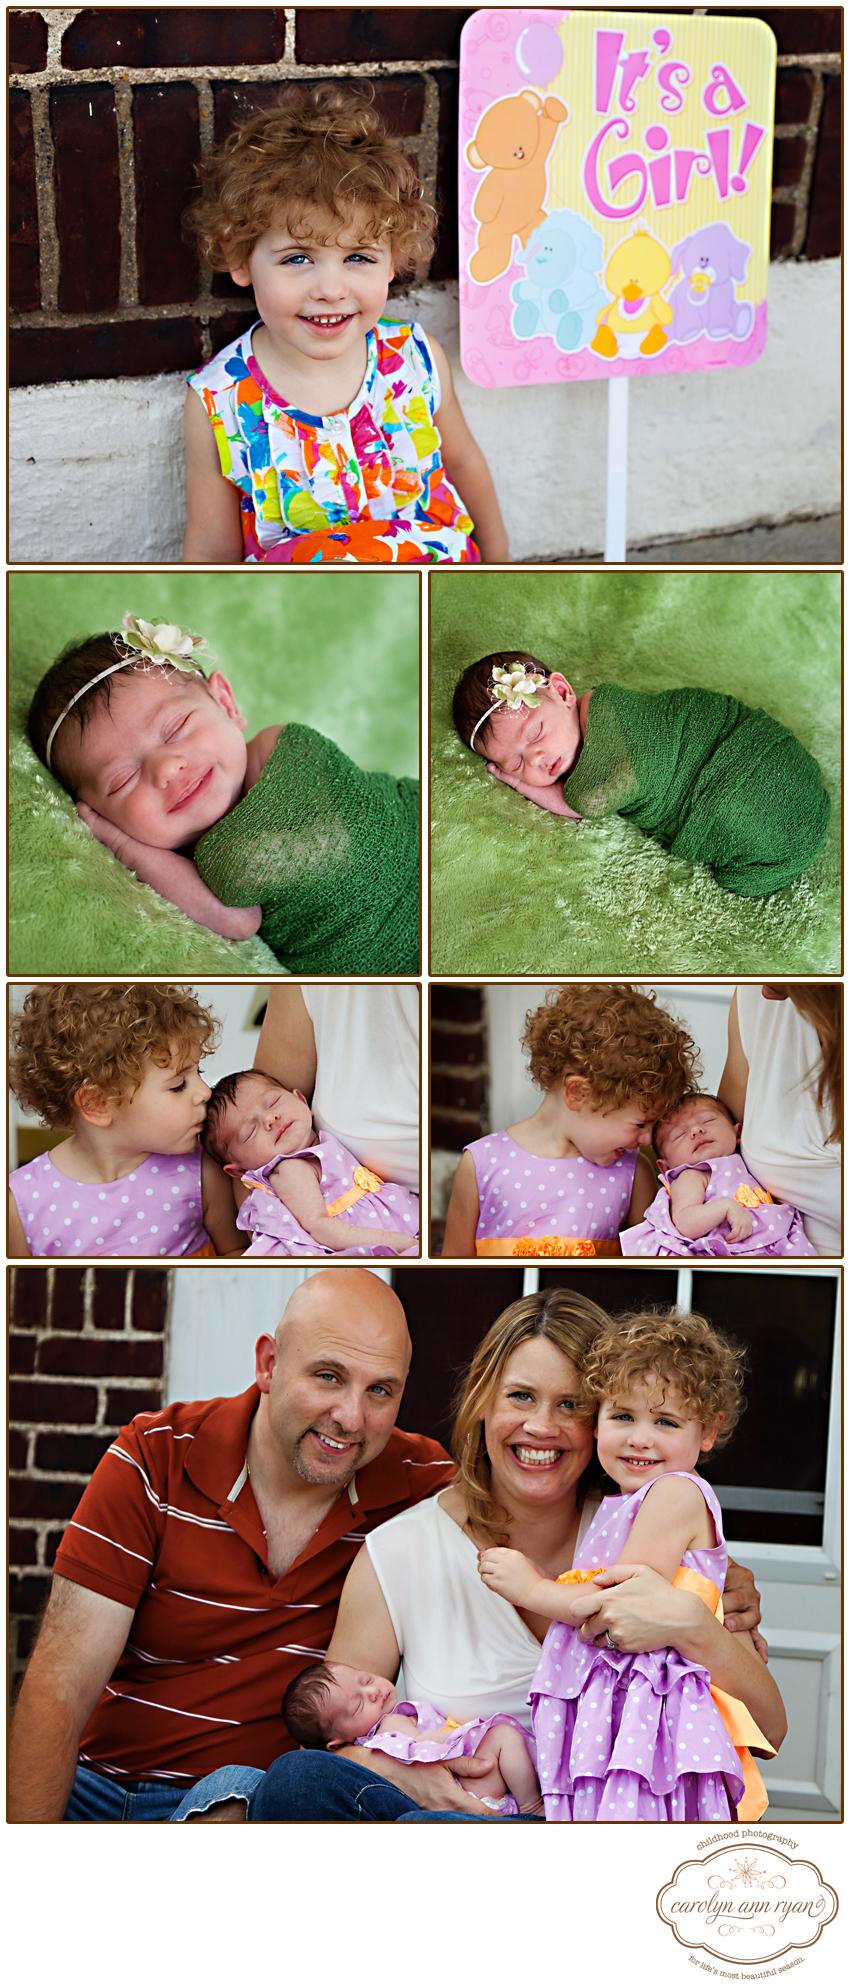 Staten Island Newborn Photographer captures images for baby session